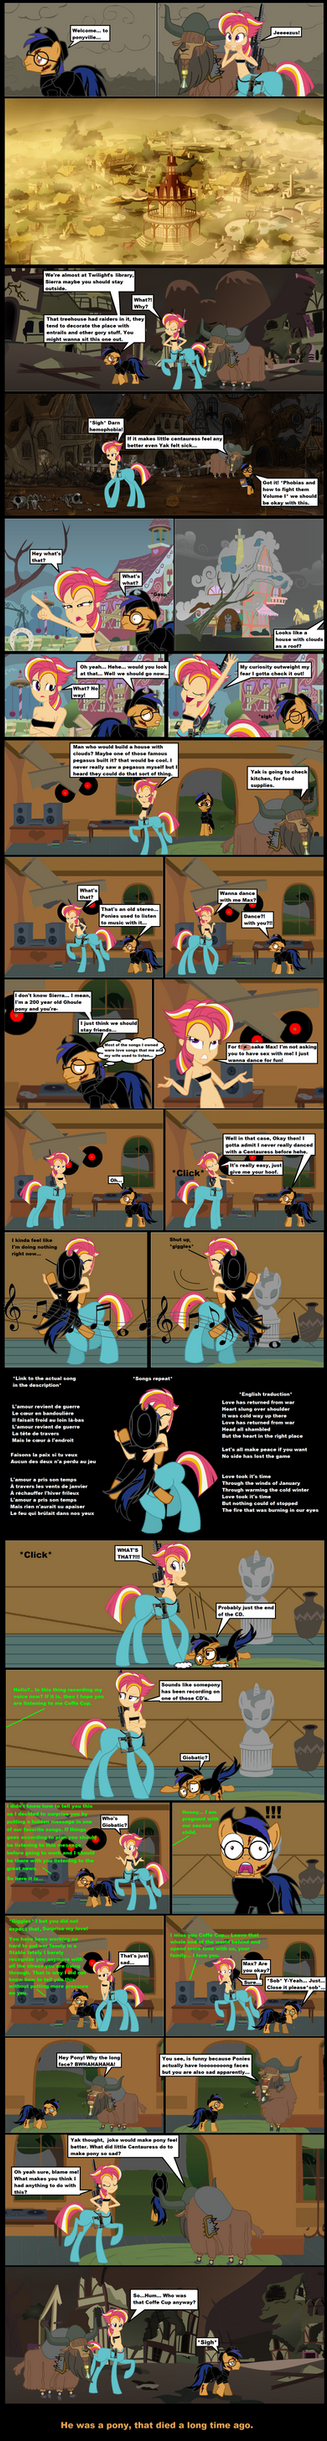 Fallout Equestria cursed crusade part 18 by darkoak213